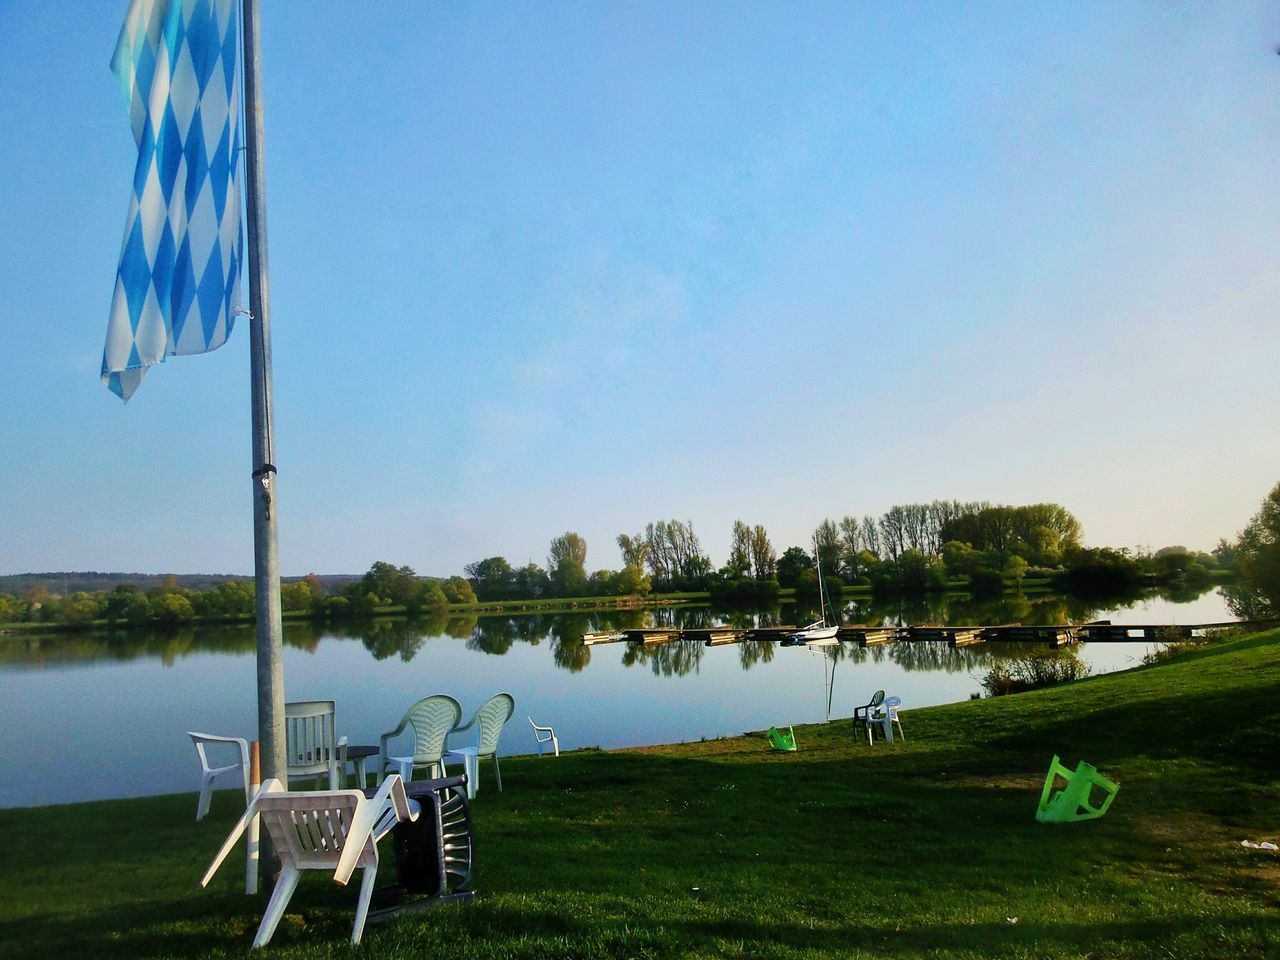 End Of A Beautiful Day (not today :( ) Sunny Day Tranquility Lakeshore Super Reflections Evening Atmosphere Quiet Waters Mirrorlike Flag In The Foreground the flag is beer advertising 😀 Empty Chairs Landscape Nature Lakeside Lake Grass Water Tree Beach Sky Day Outdoors No People Scenics Kinzigsee Langenselbold Germany🇩🇪